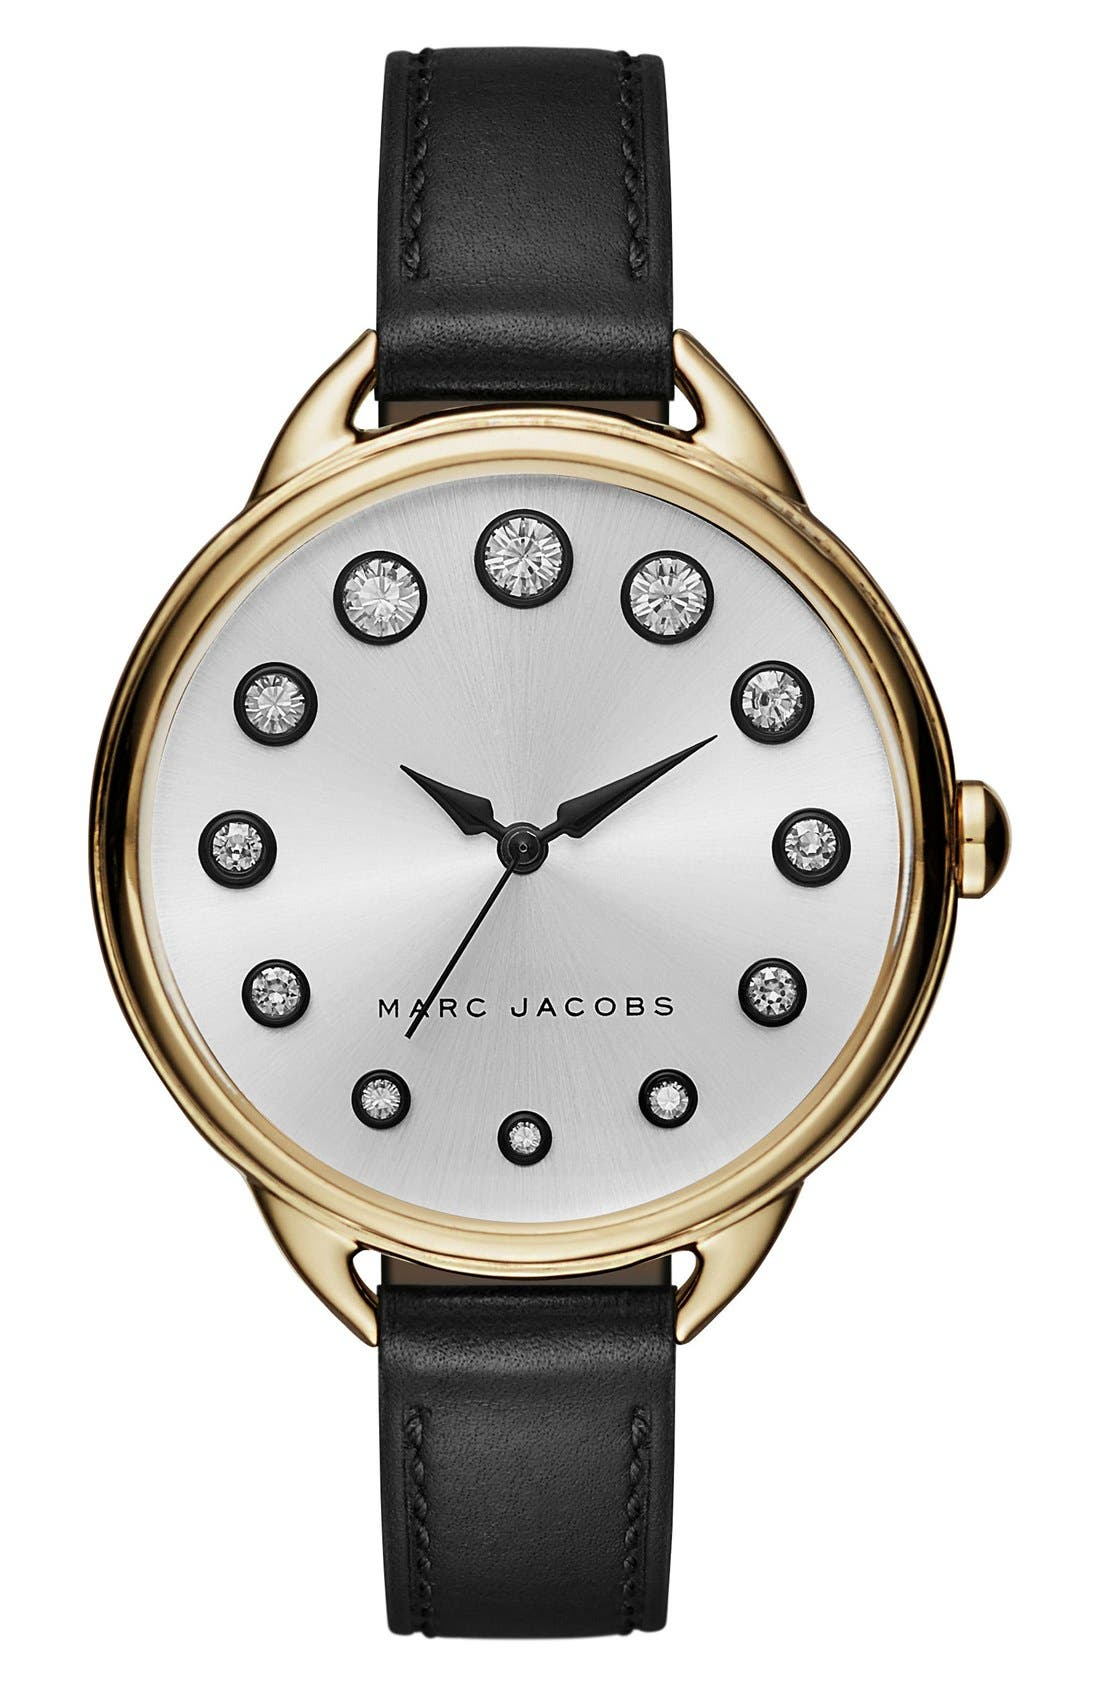 Main Image - MARC JACOBS 'Betty' Leather Strap Watch, 36mm